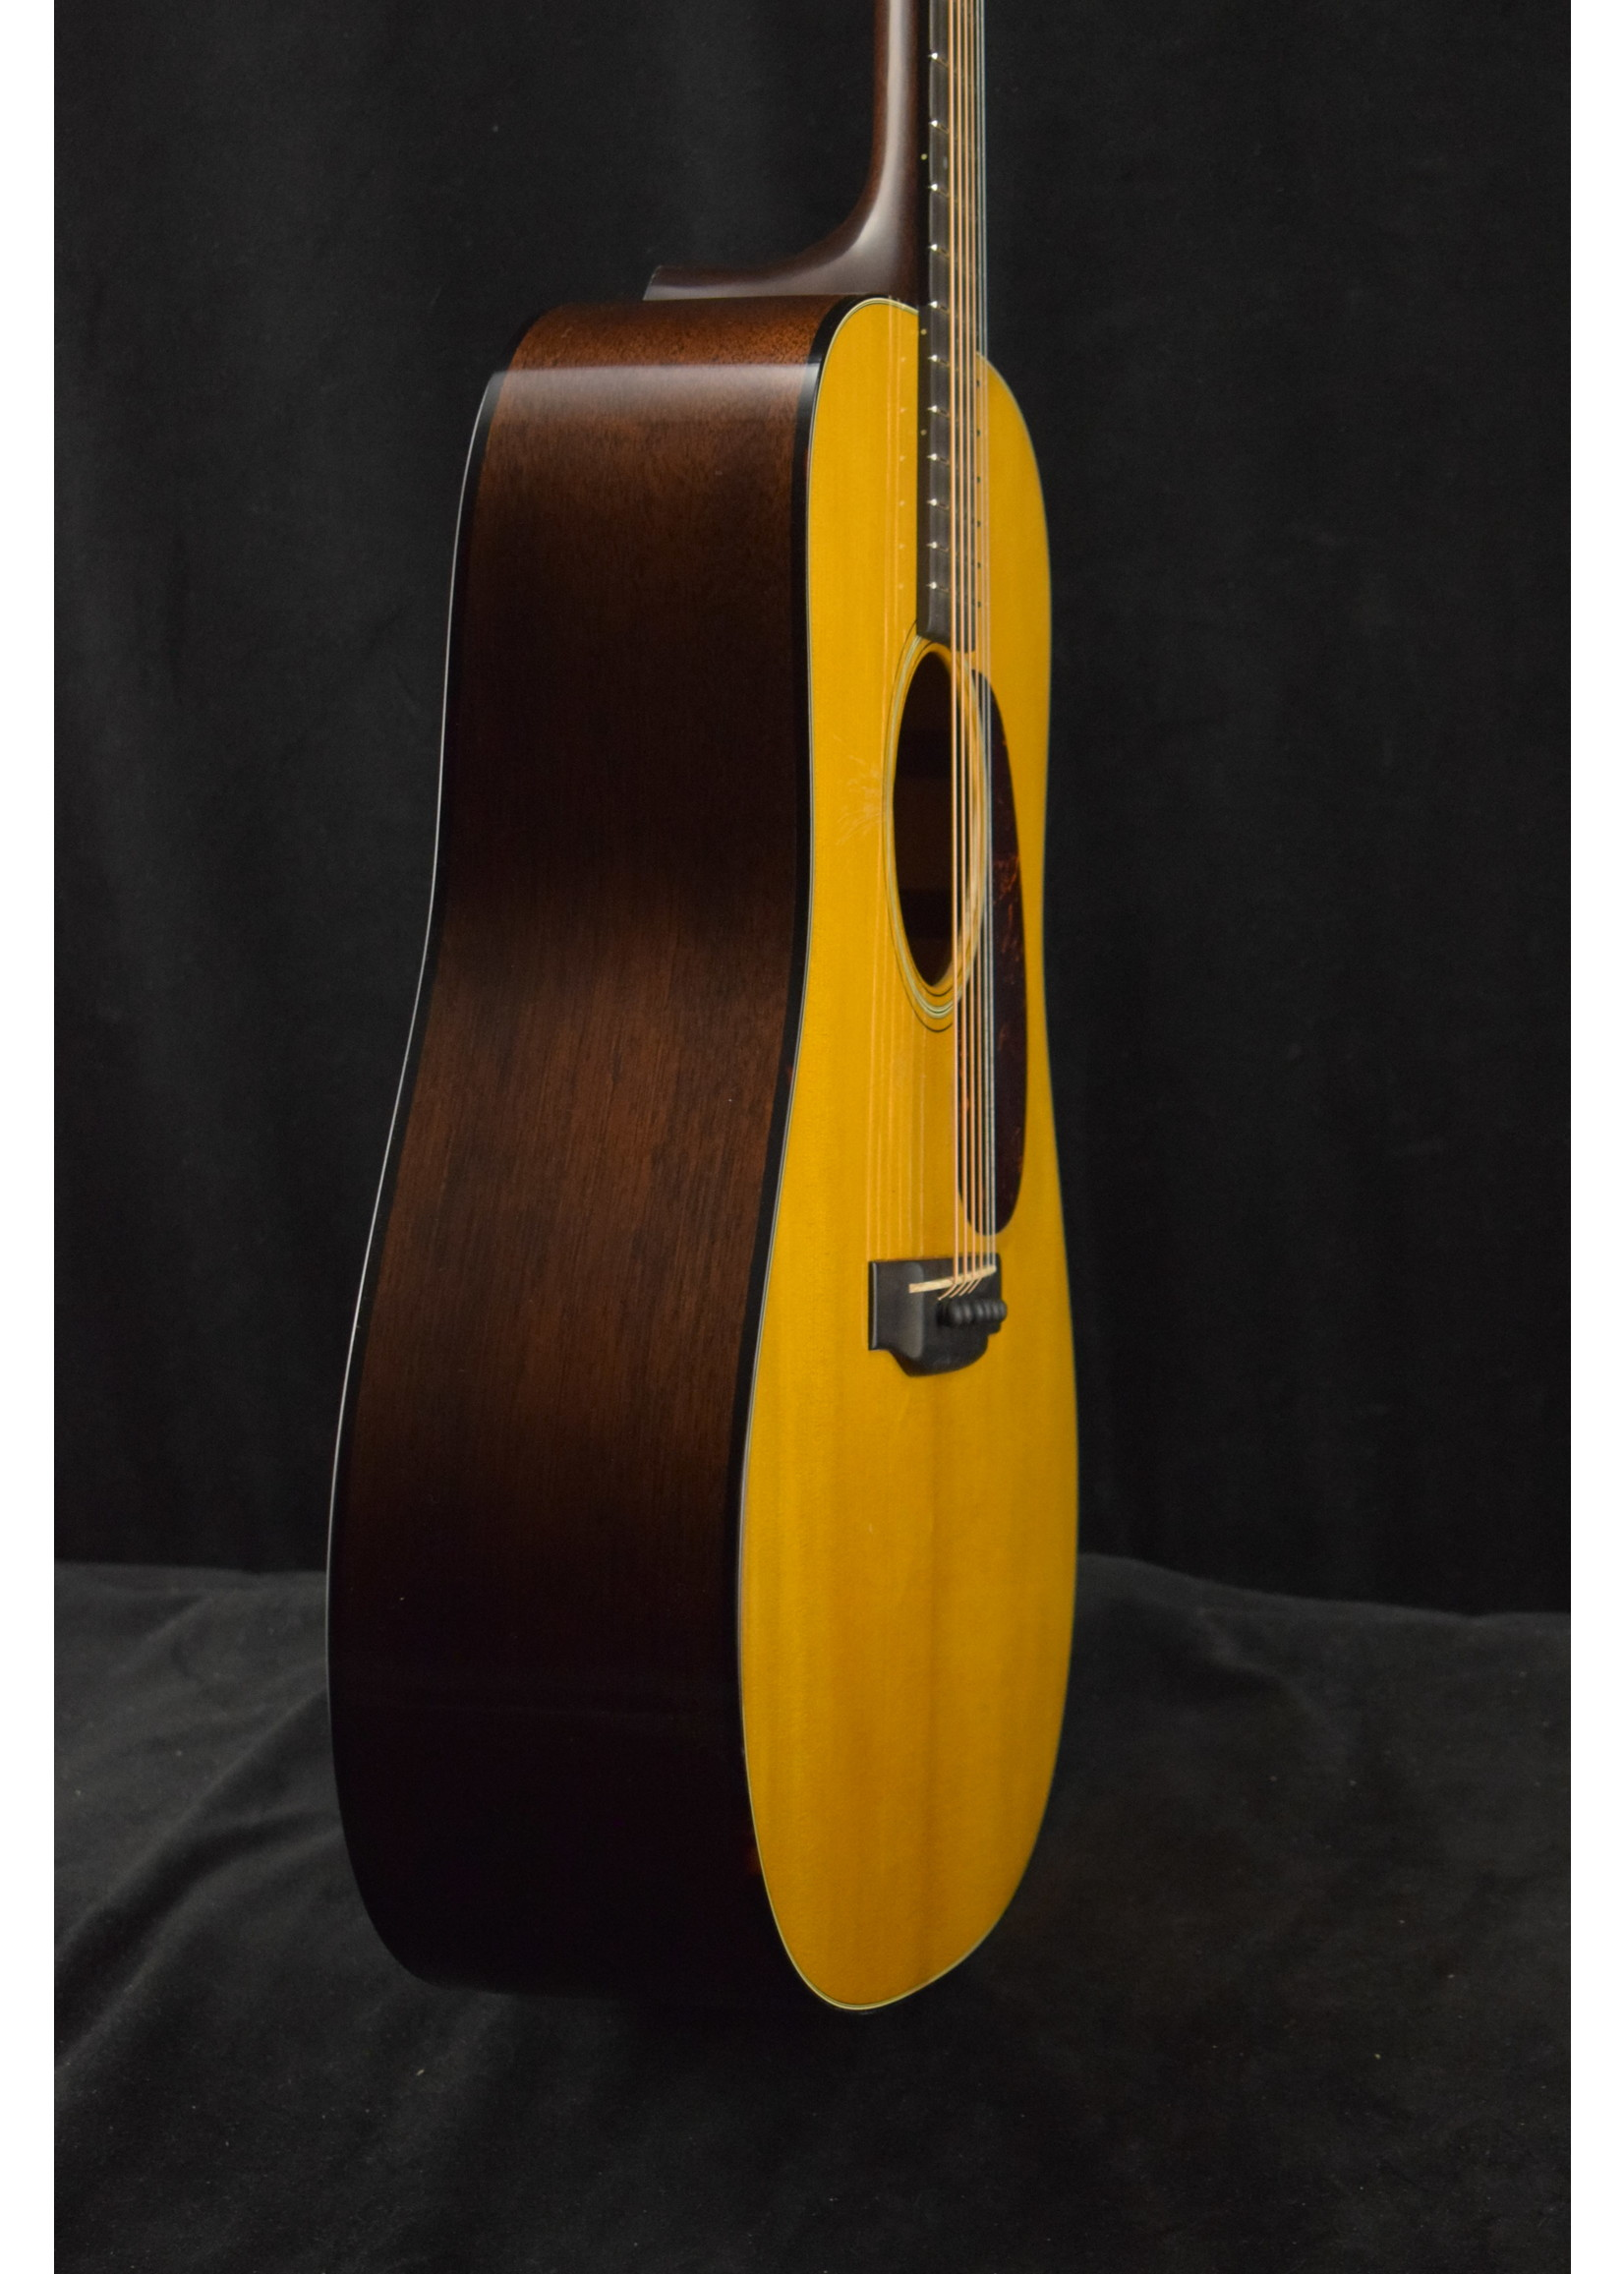 Martin Martin D-18 Authentic 1939 Aged Natural